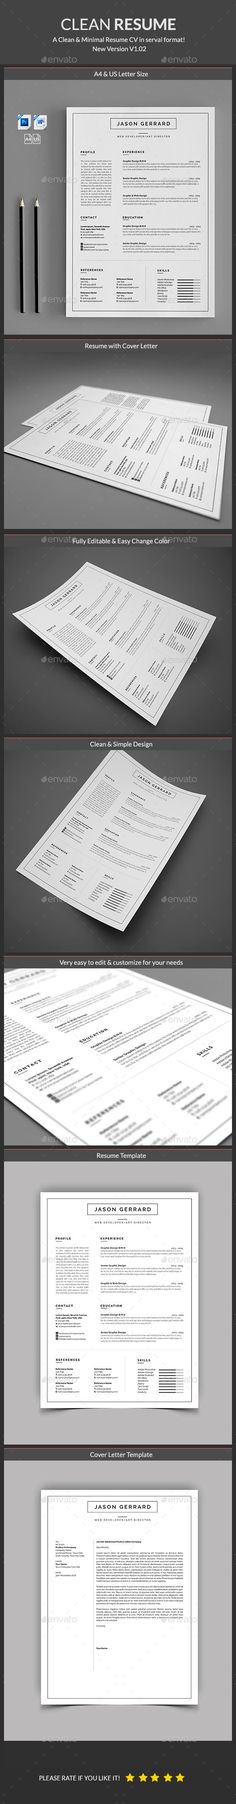 Resume Template PSD, MS Word. Download here: http://graphicriver.net/item/resume/16496846?ref=ksioks